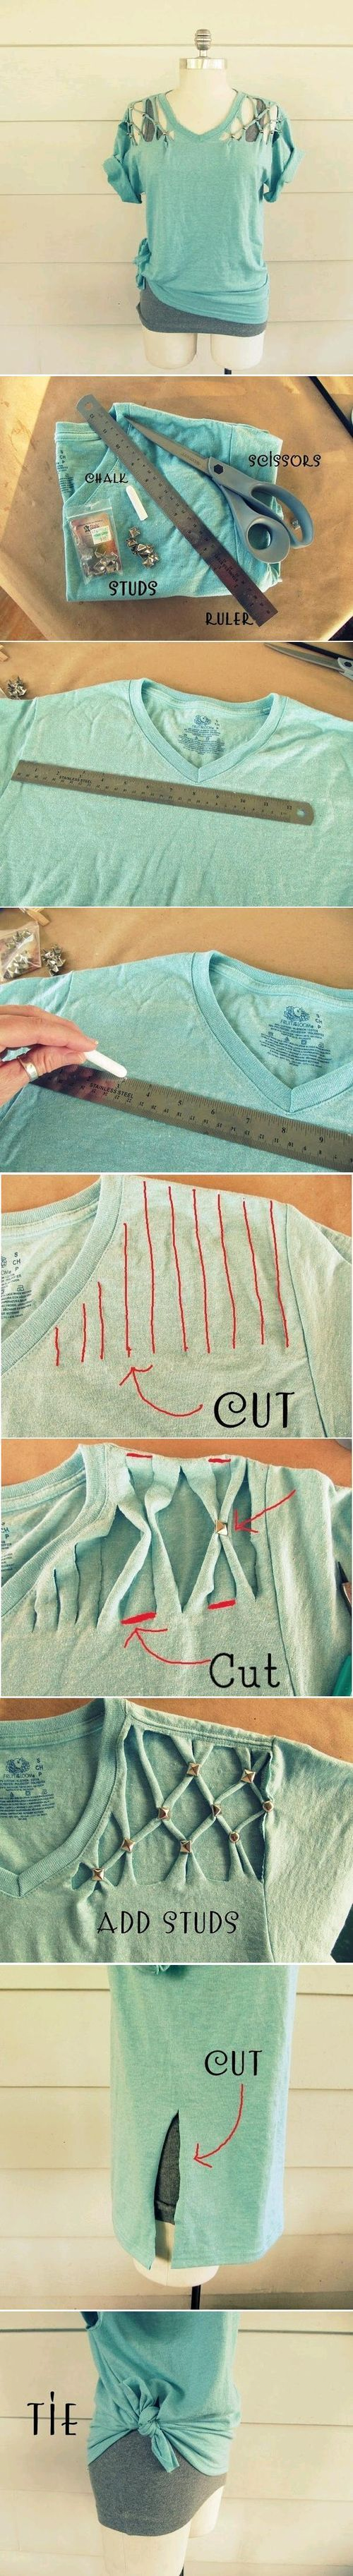 DIY cut+studded shirt